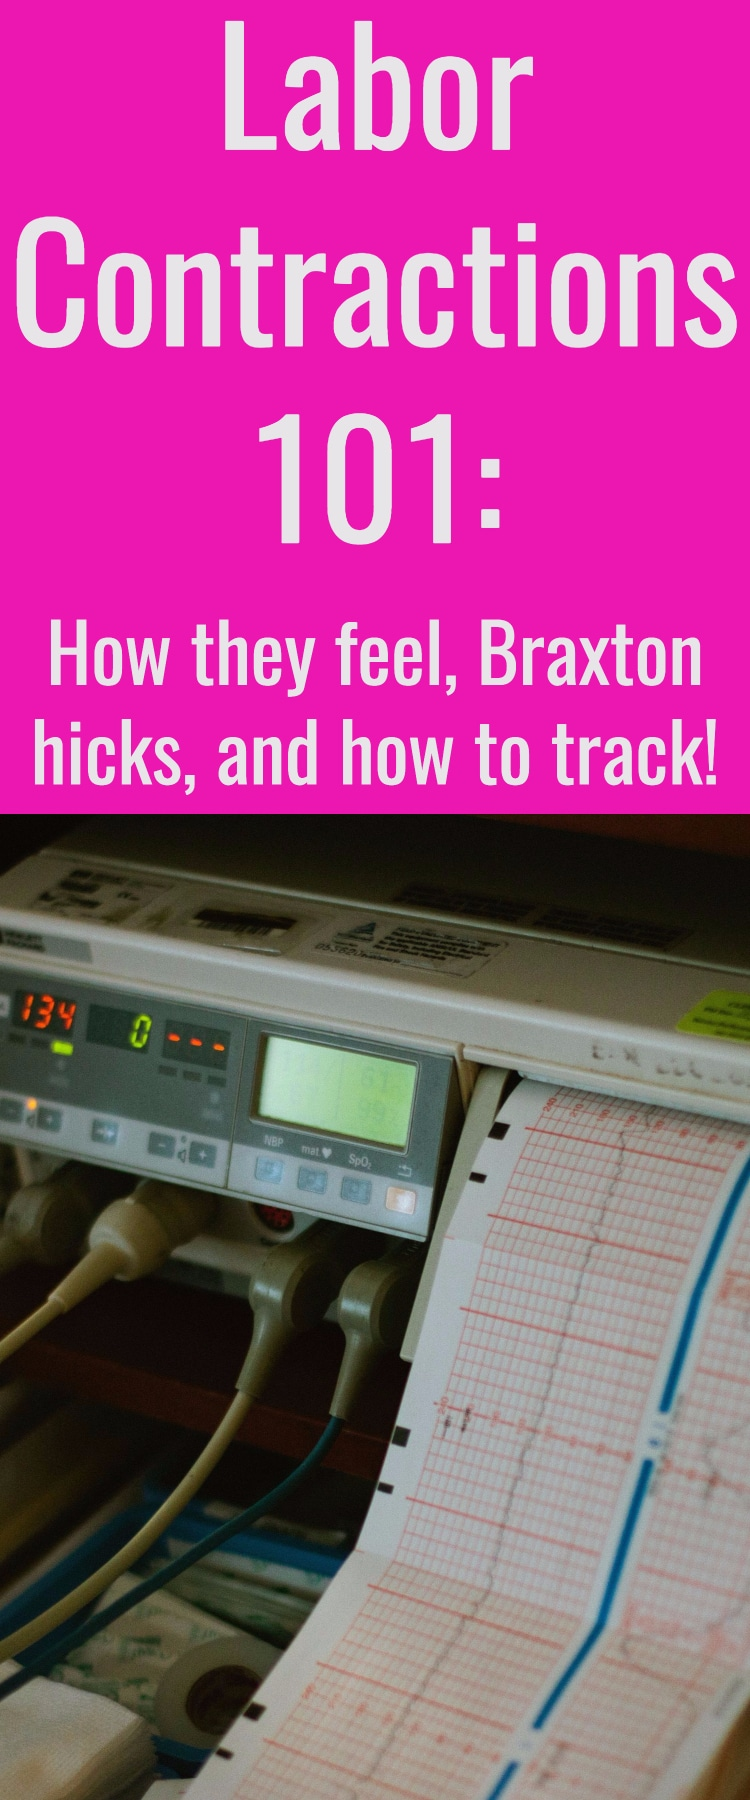 Labor Contractions 101: How They Feel, Contraction Trackers, and More